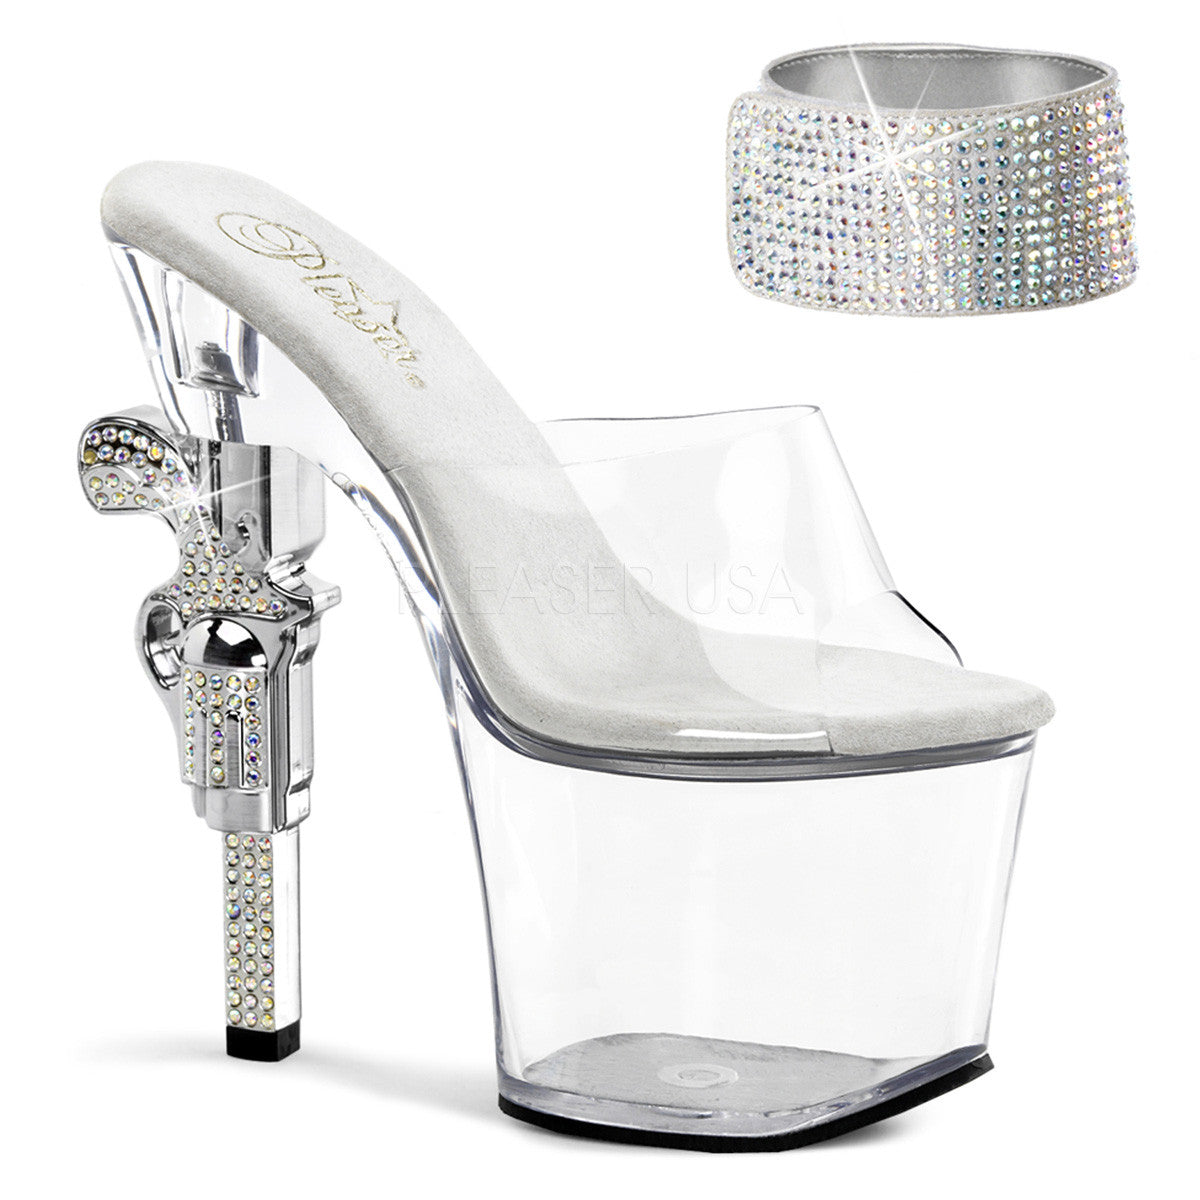 PLEASER REVOLVER-712 Clear Platform Slides